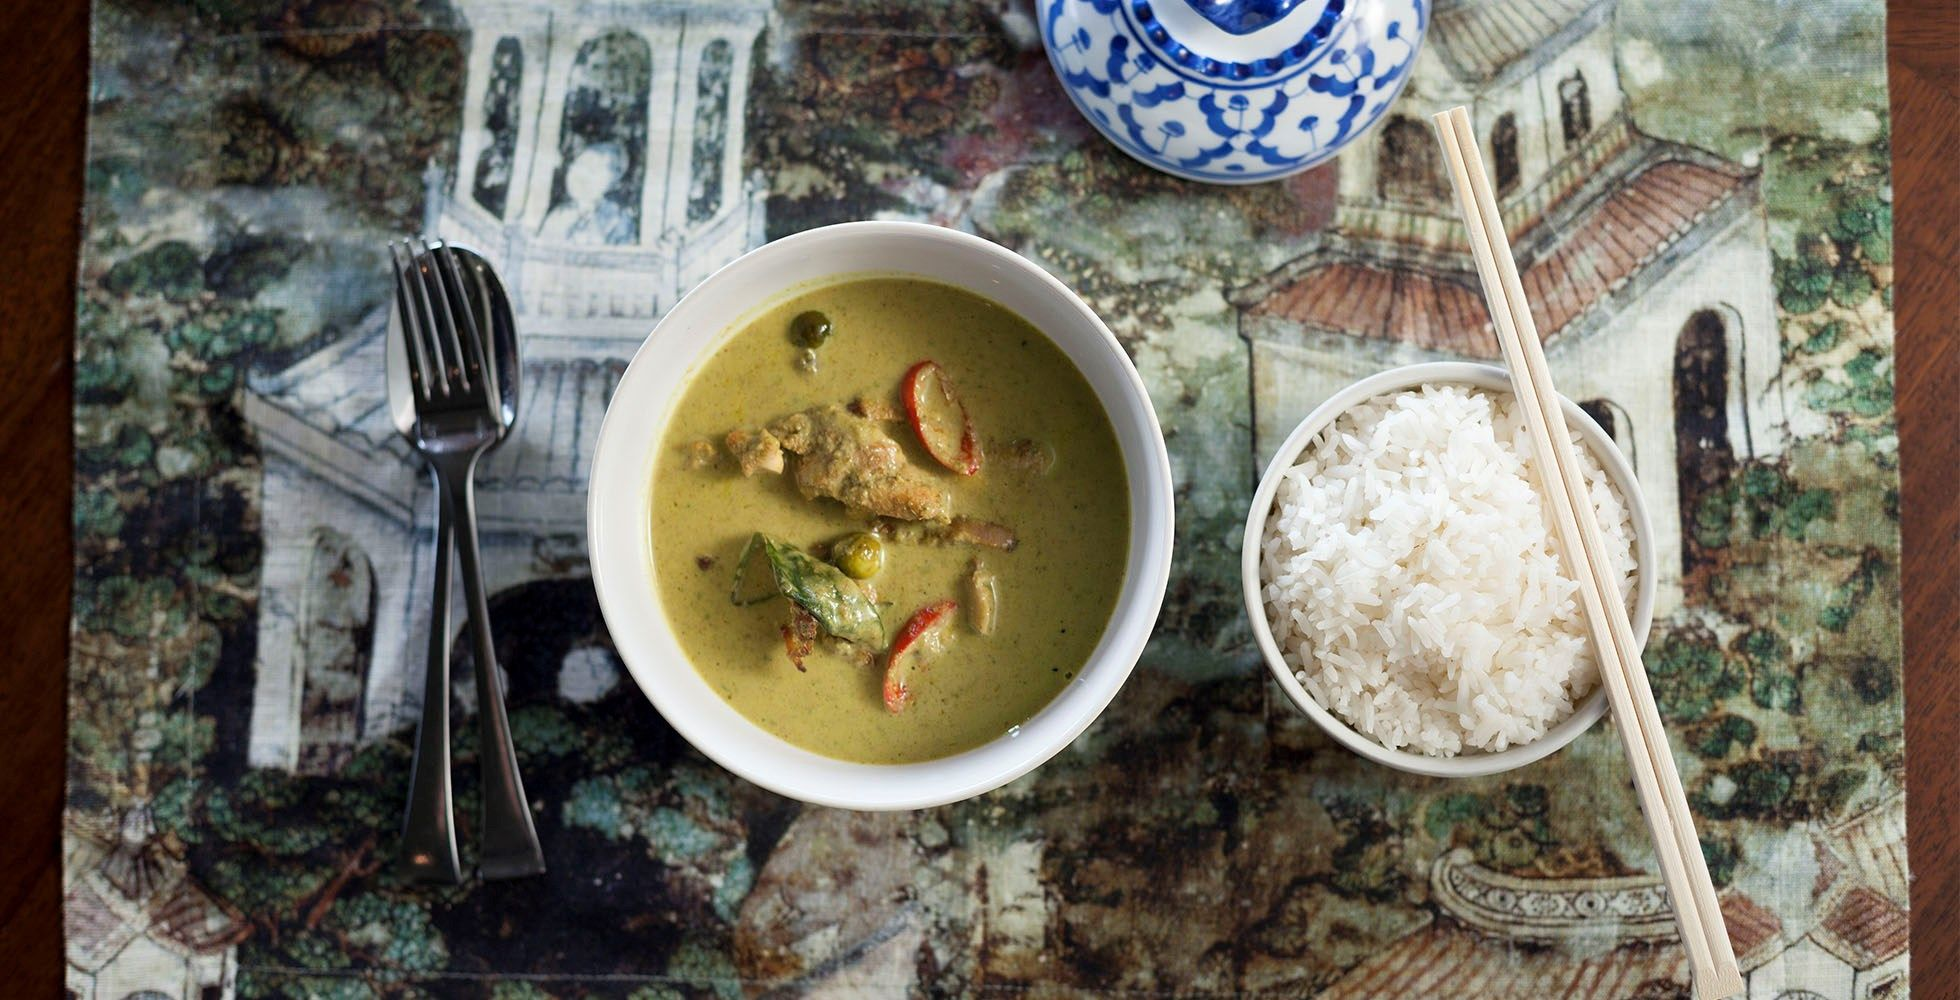 Busaba Eathai is a chain of modern Thai restaurants with a simple but authentic and fresh menu. Chef Jude Sangsida from Busaba Eathai gives you three essential tips for making the best green curry you can.